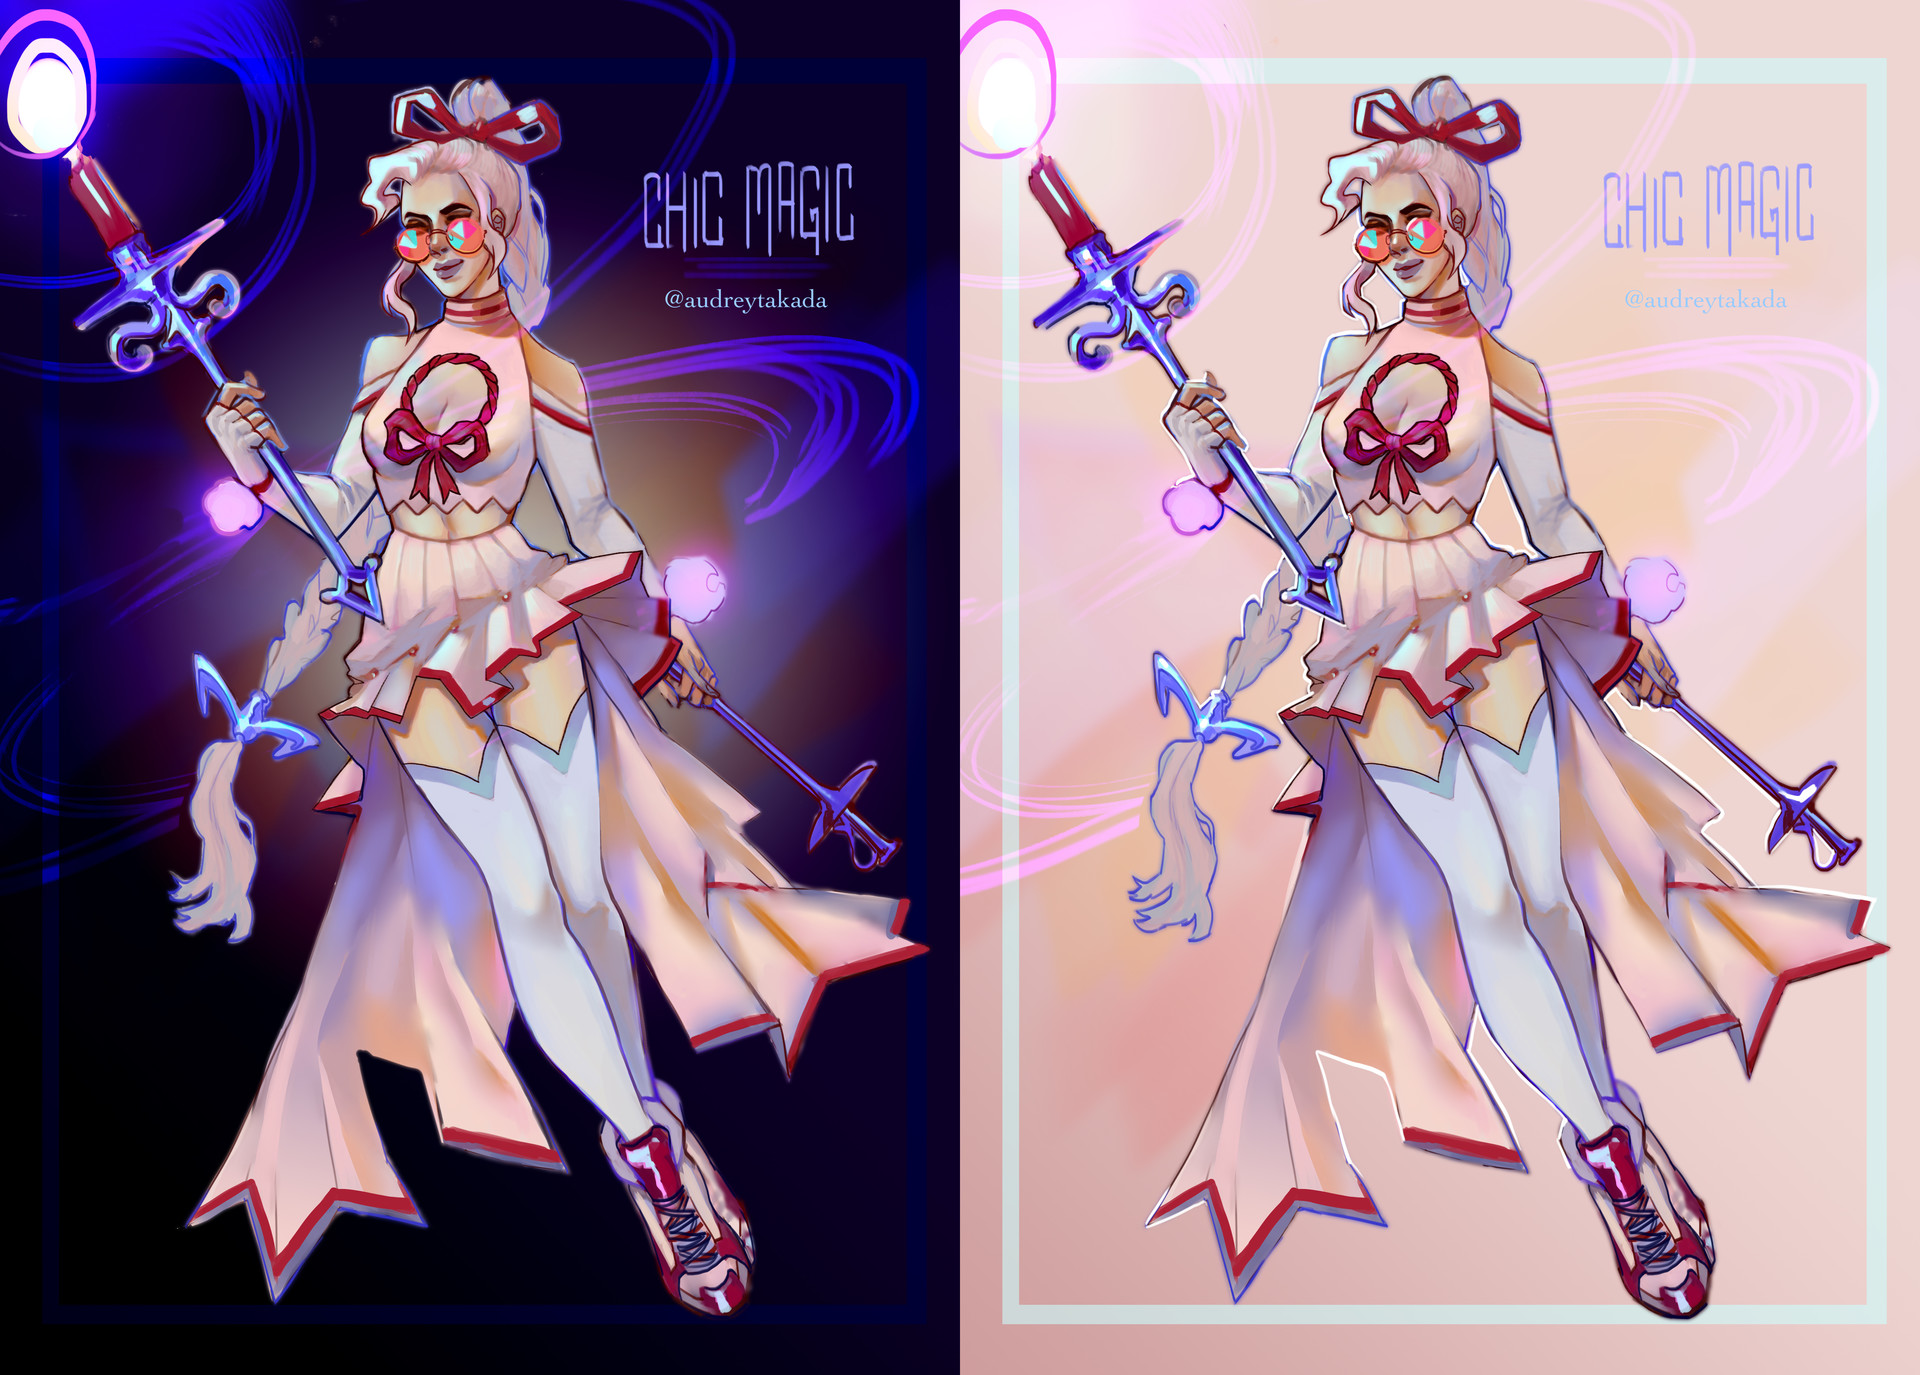 Felt like making a stylish, chic magical girl.